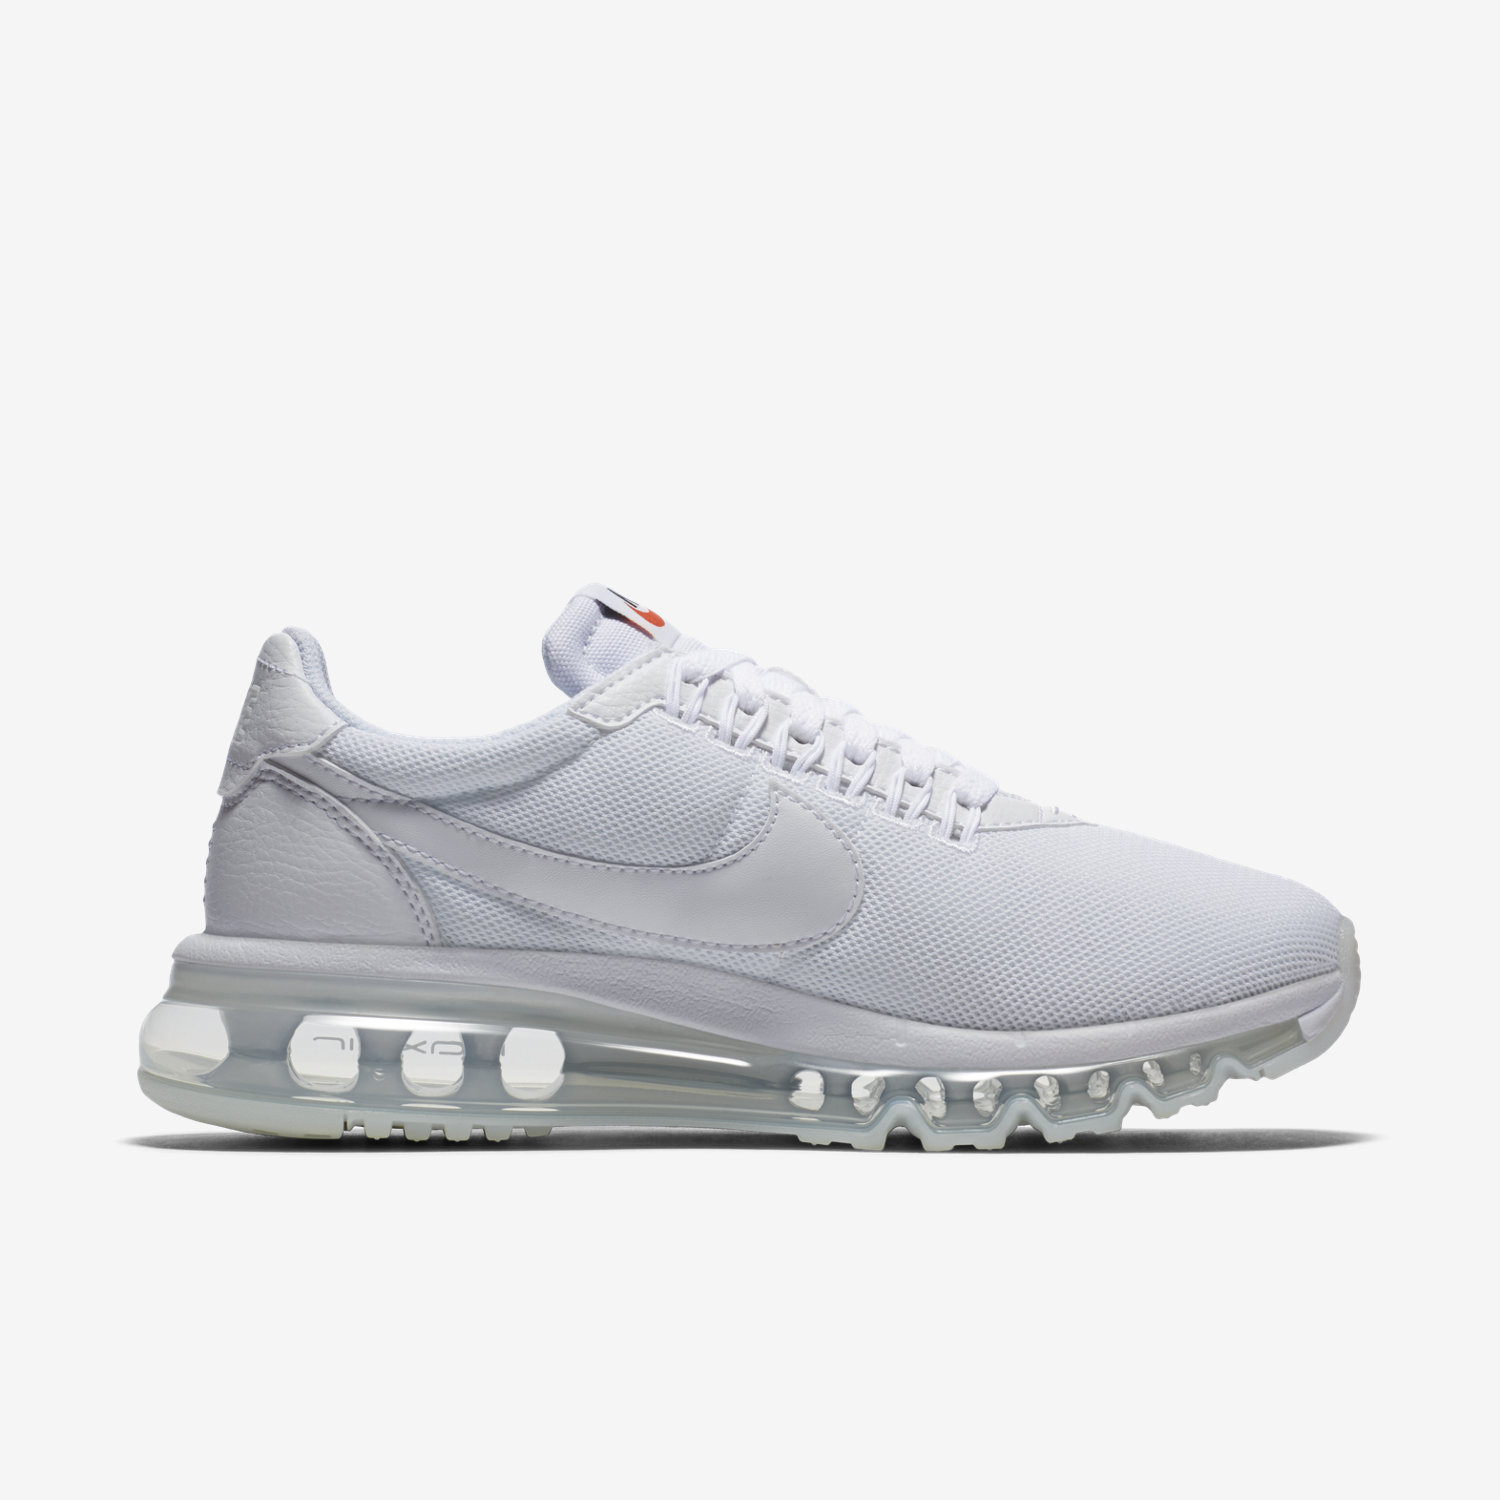 vast selection affordable price quite nice 6wy4xqrxr 85 Homme Noir Rose Chaussure Air Max 95 Femme Nike